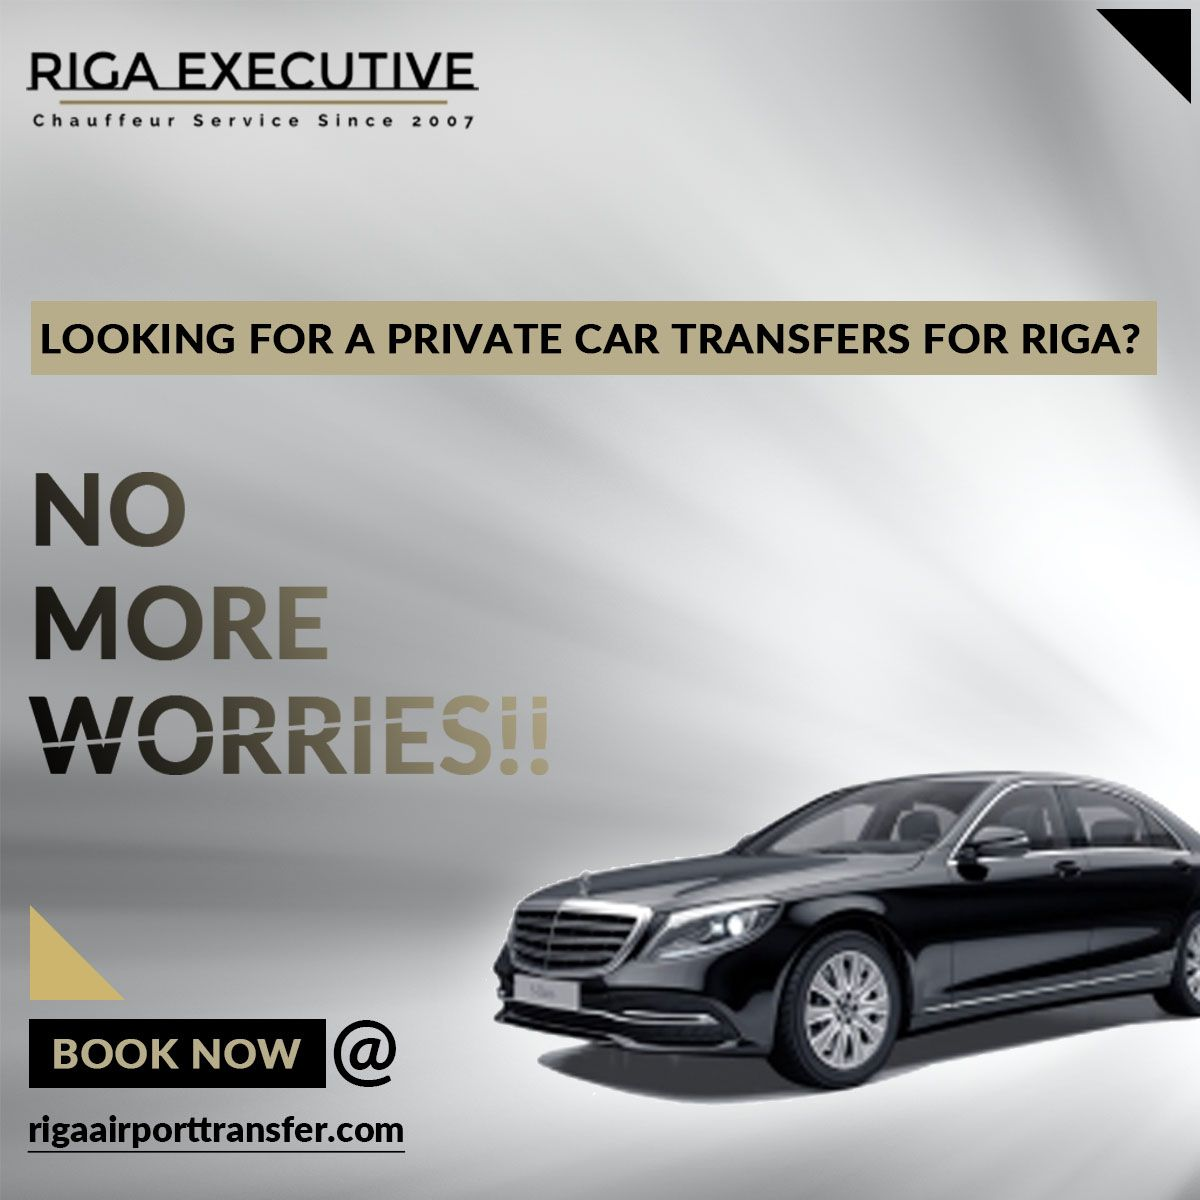 Pin by Riga Airport Transfer on Riga Airport Transfer